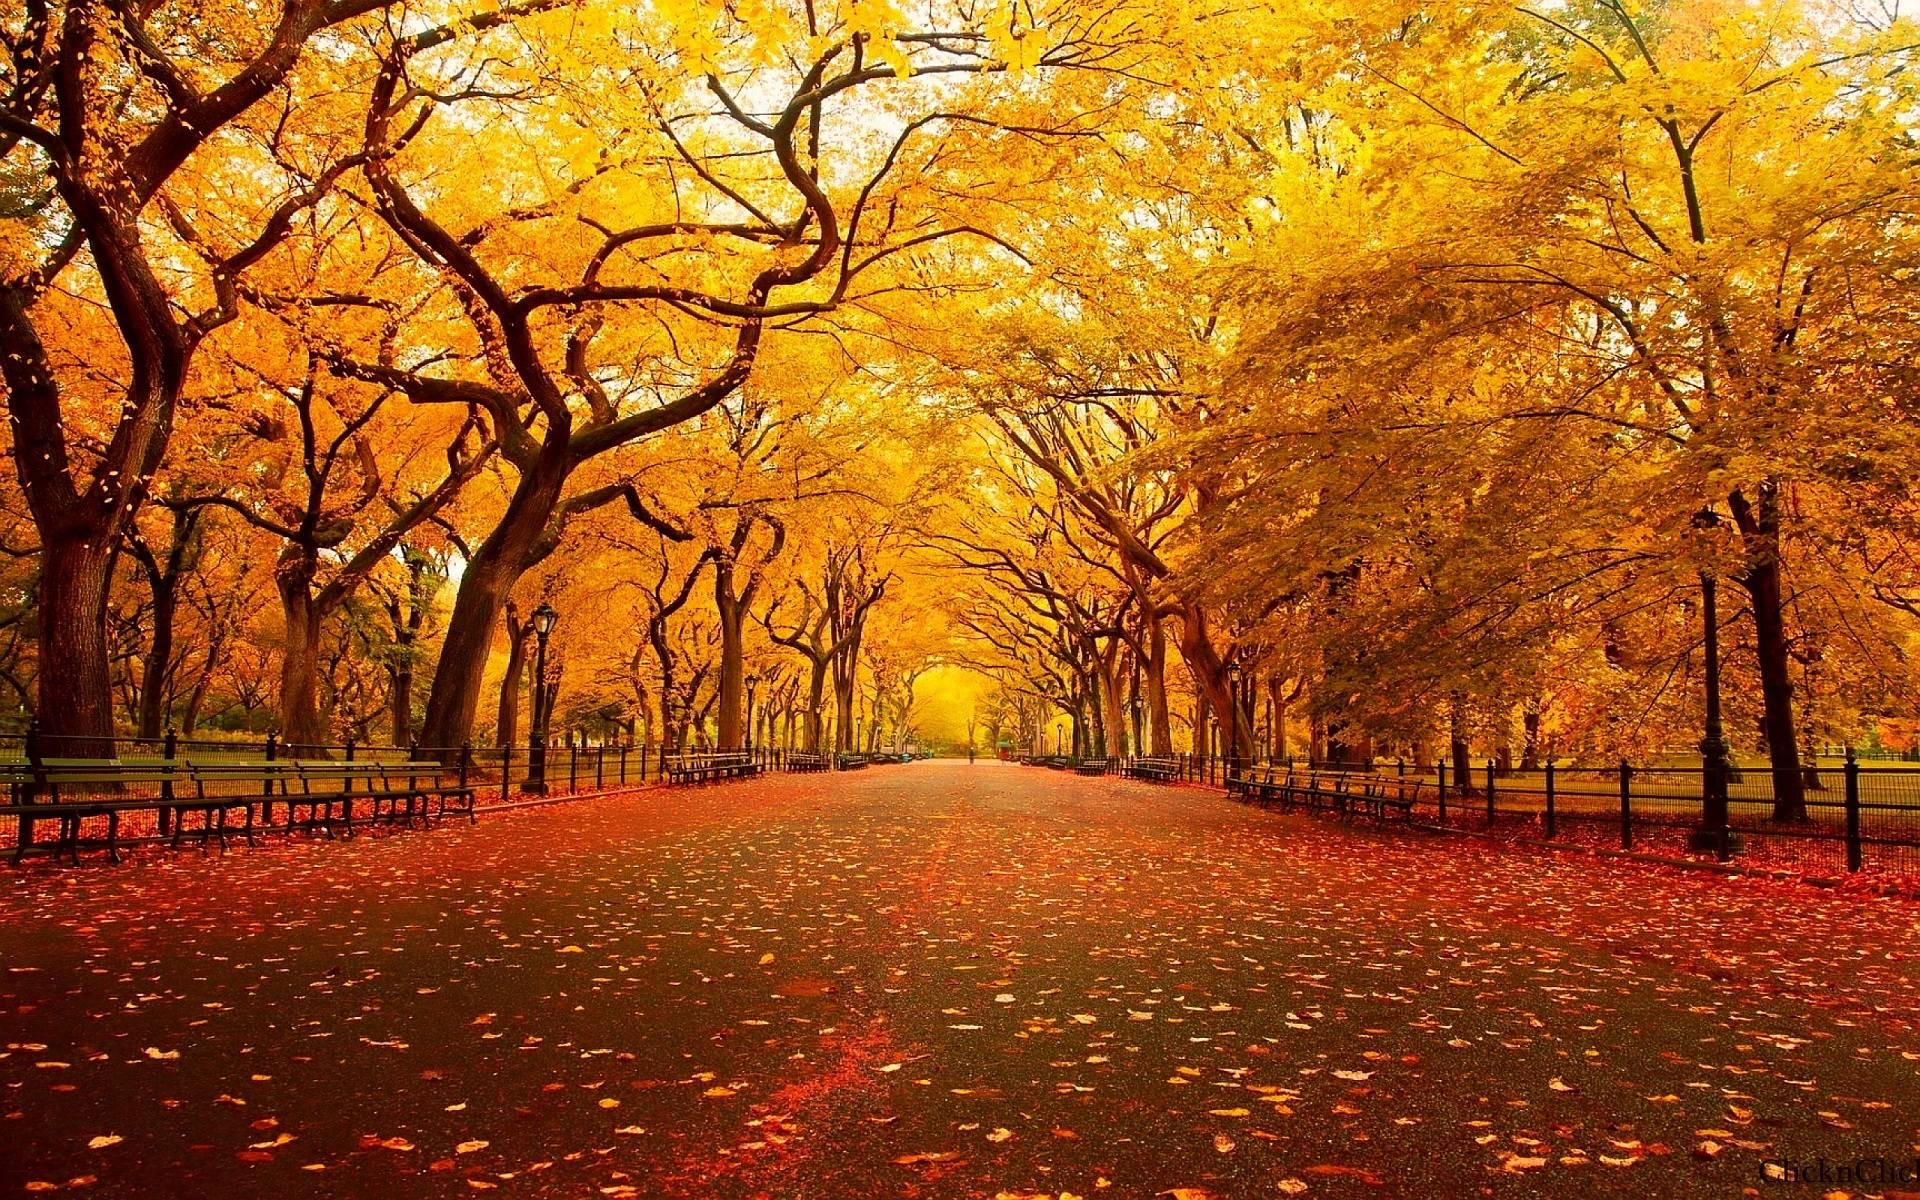 Popular Screensavers And Wallpaper 47 Images: Autumn Screensavers Wallpaper (57+ Images